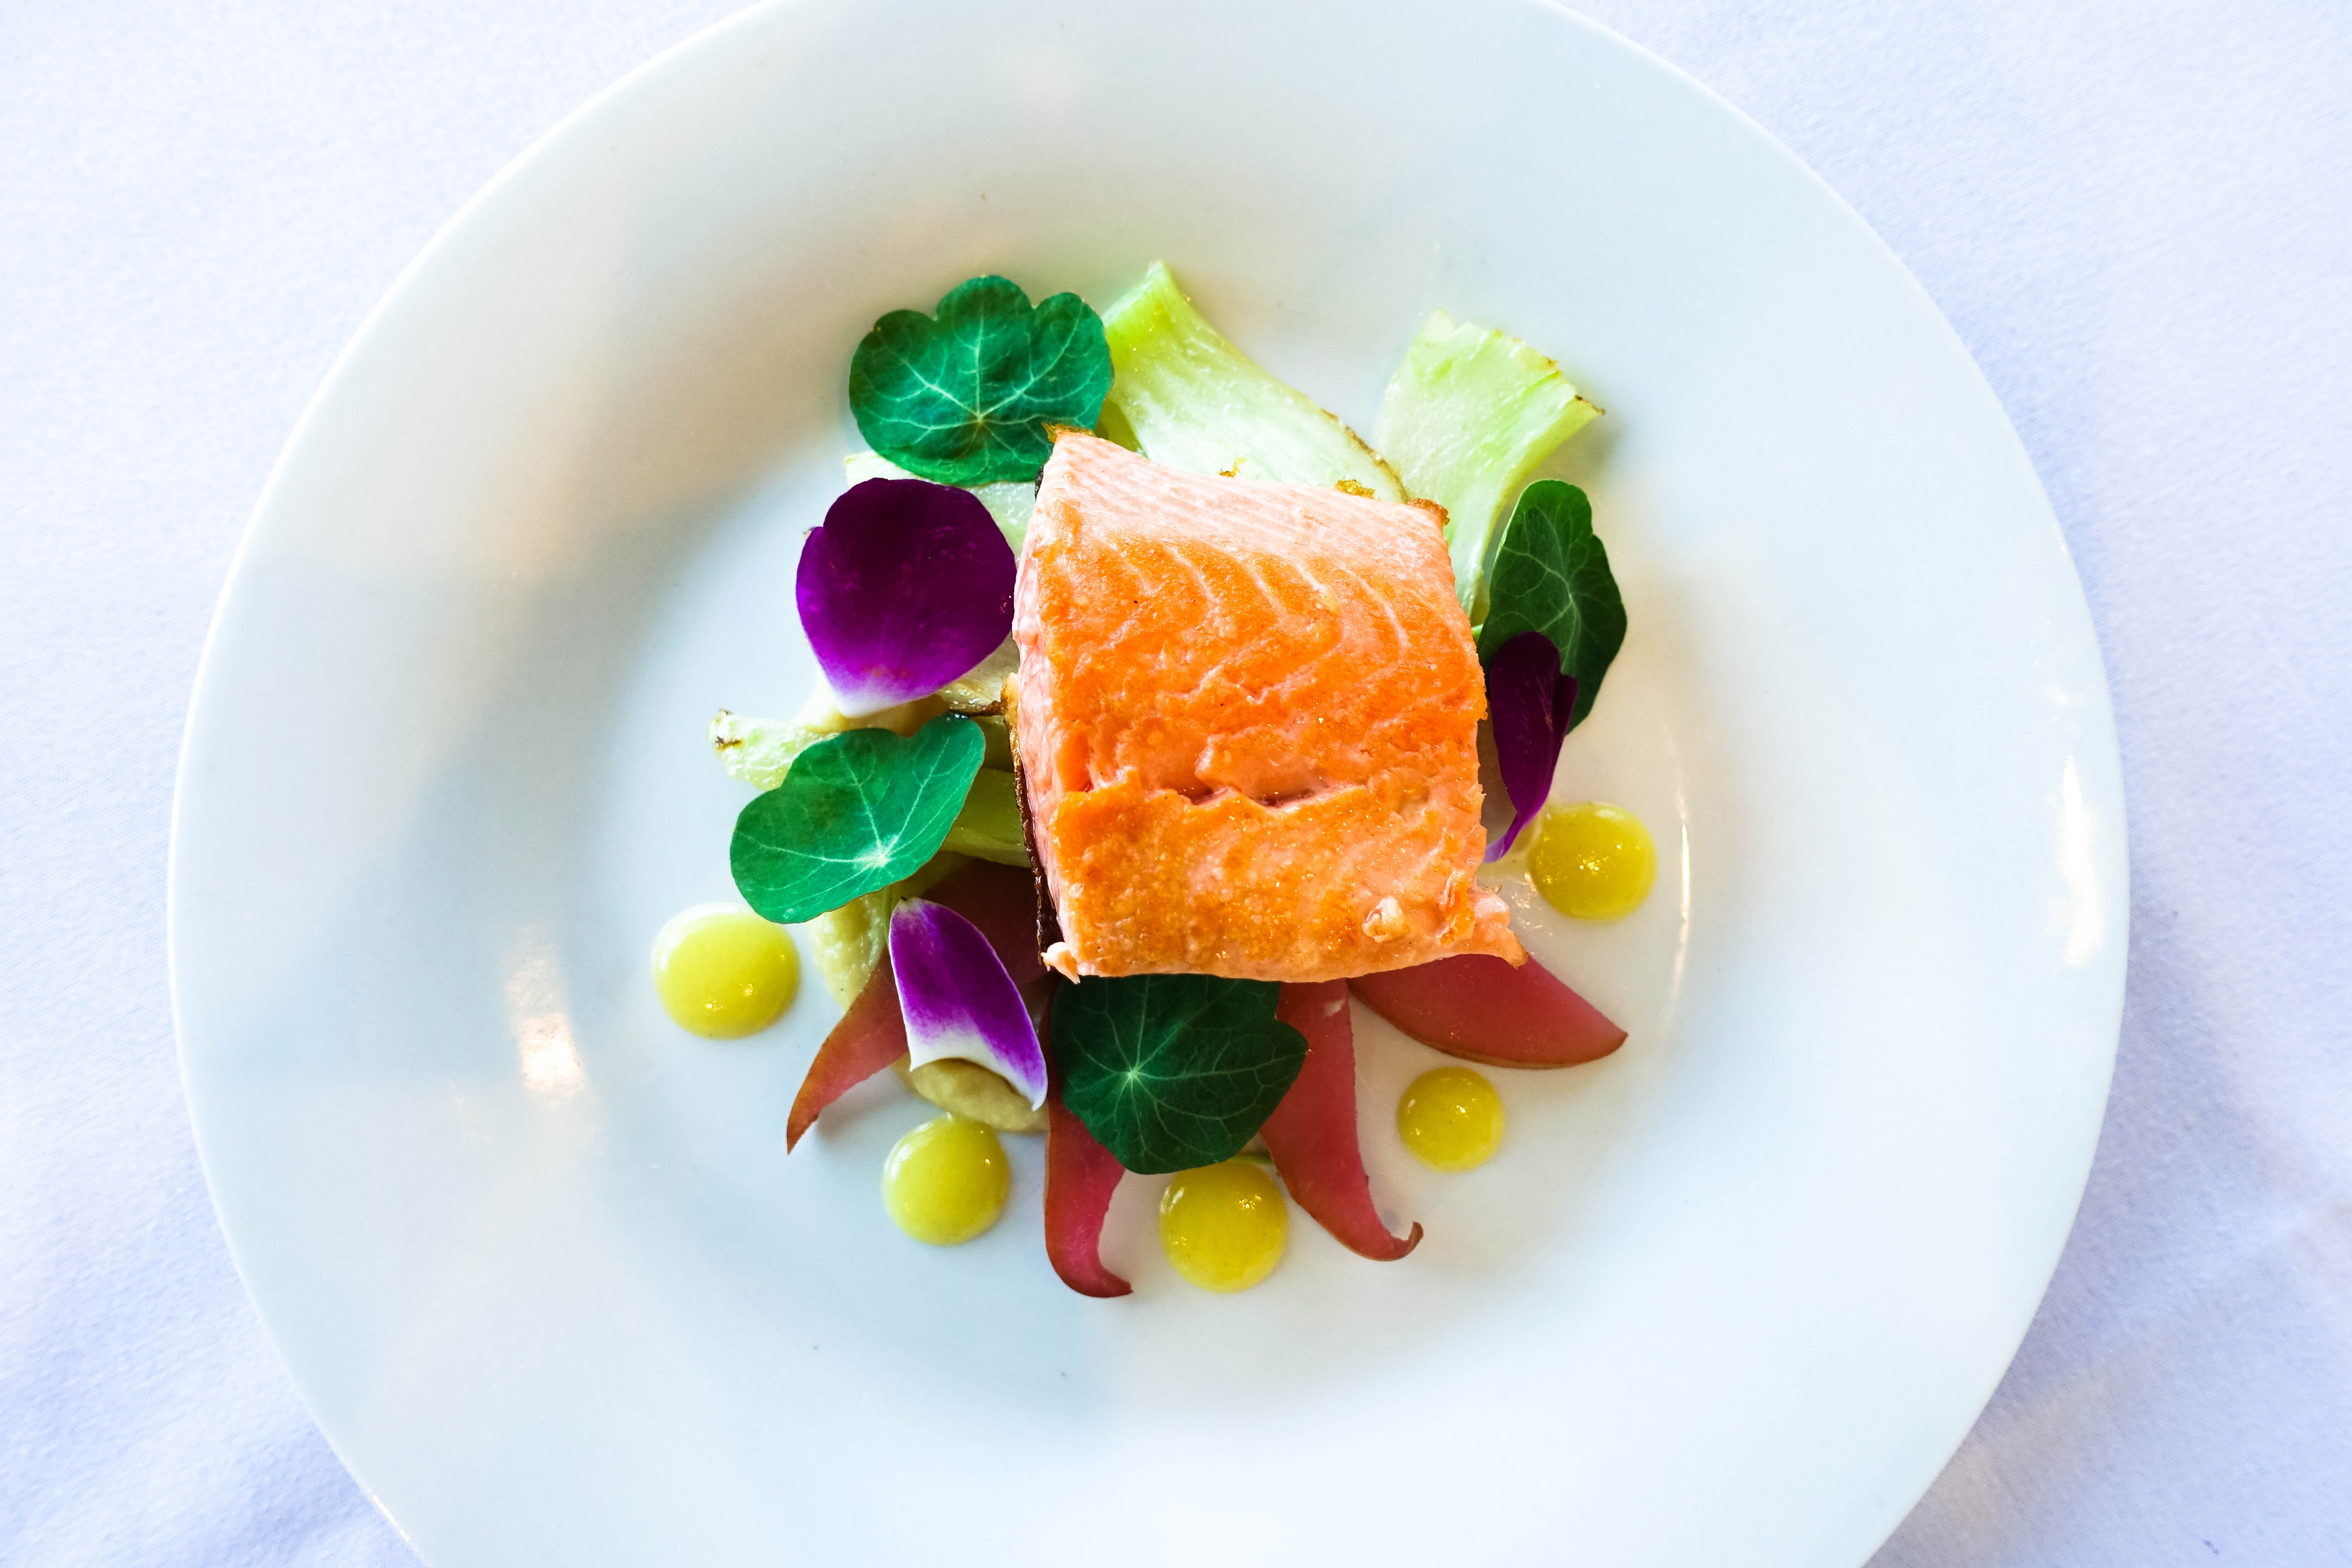 Grilled New Zealand Ora King Salmon